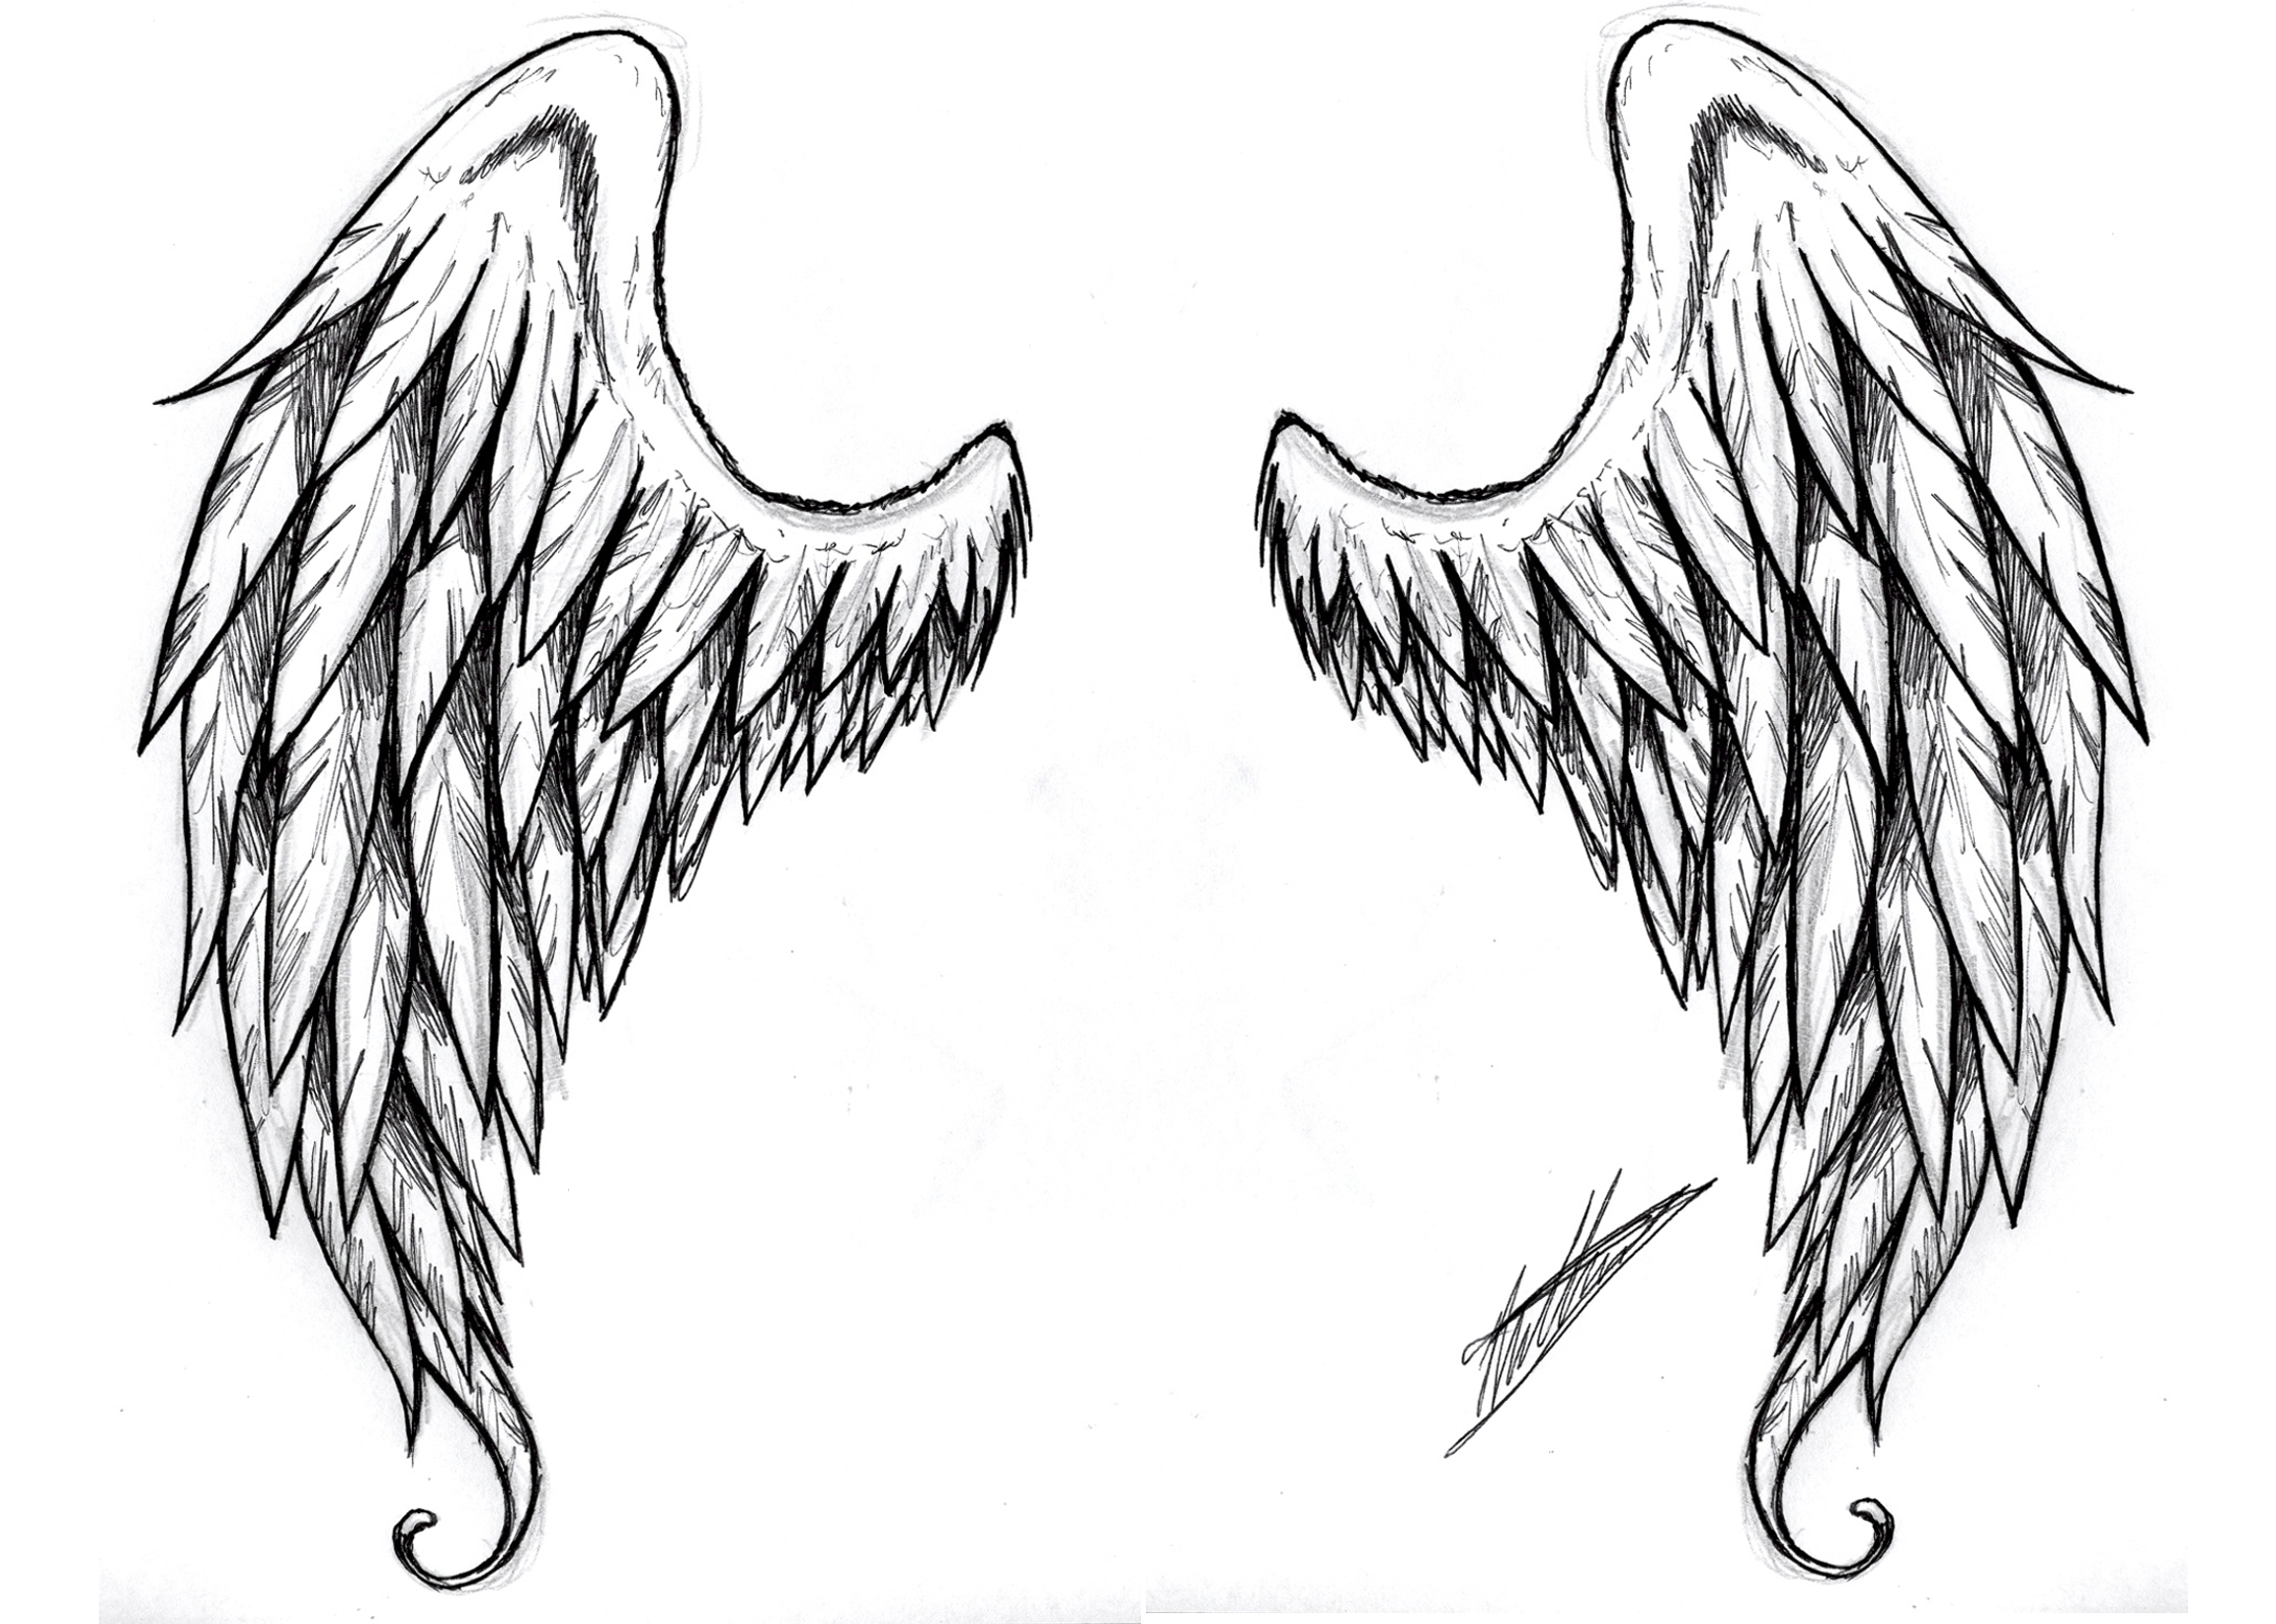 Cross with wings Clipart and Stock Illustrations. 2,422 Cross with wings  vector EPS illustrations and drawings available to search from thousands of  royalty free clip art graphic designers.